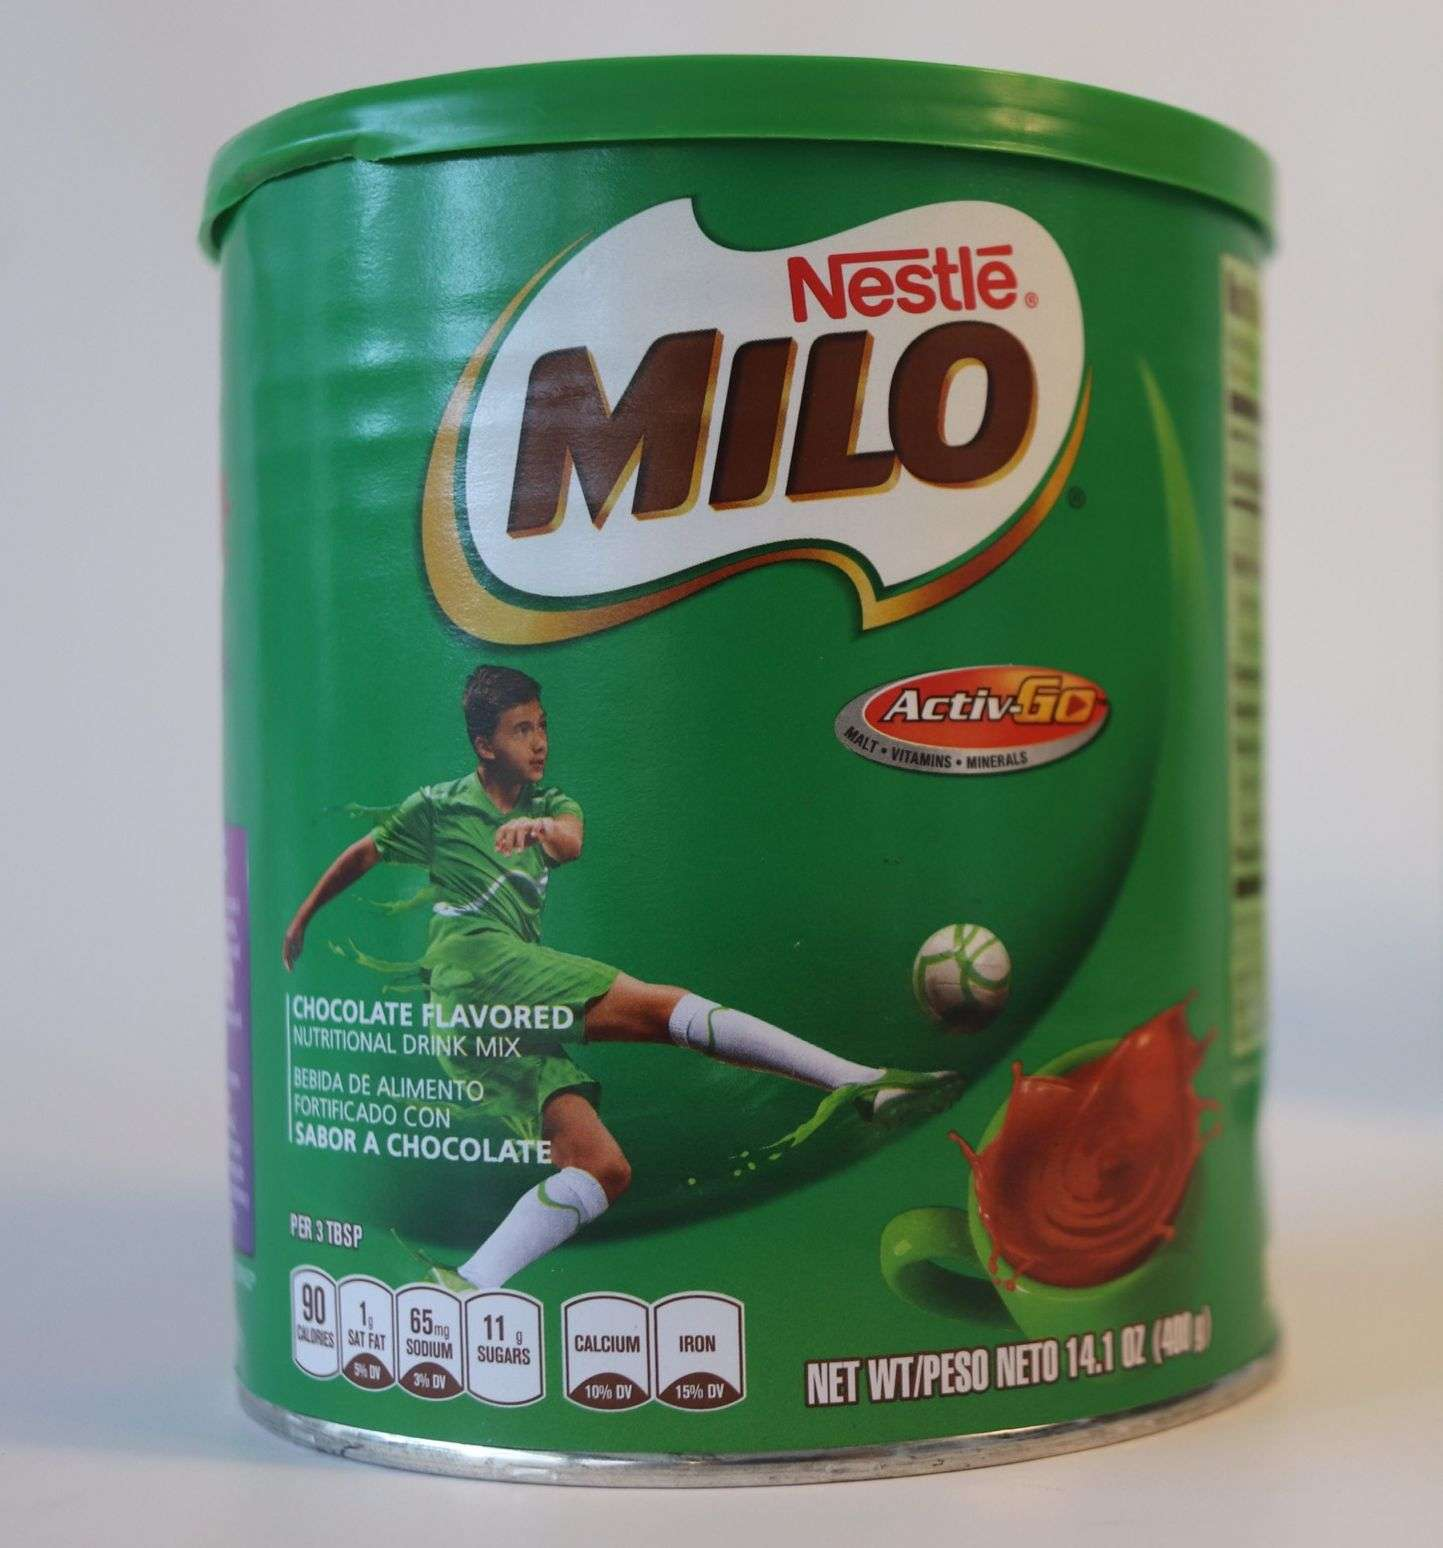 Nestle Milo Chocolate Flavored Drink Mix